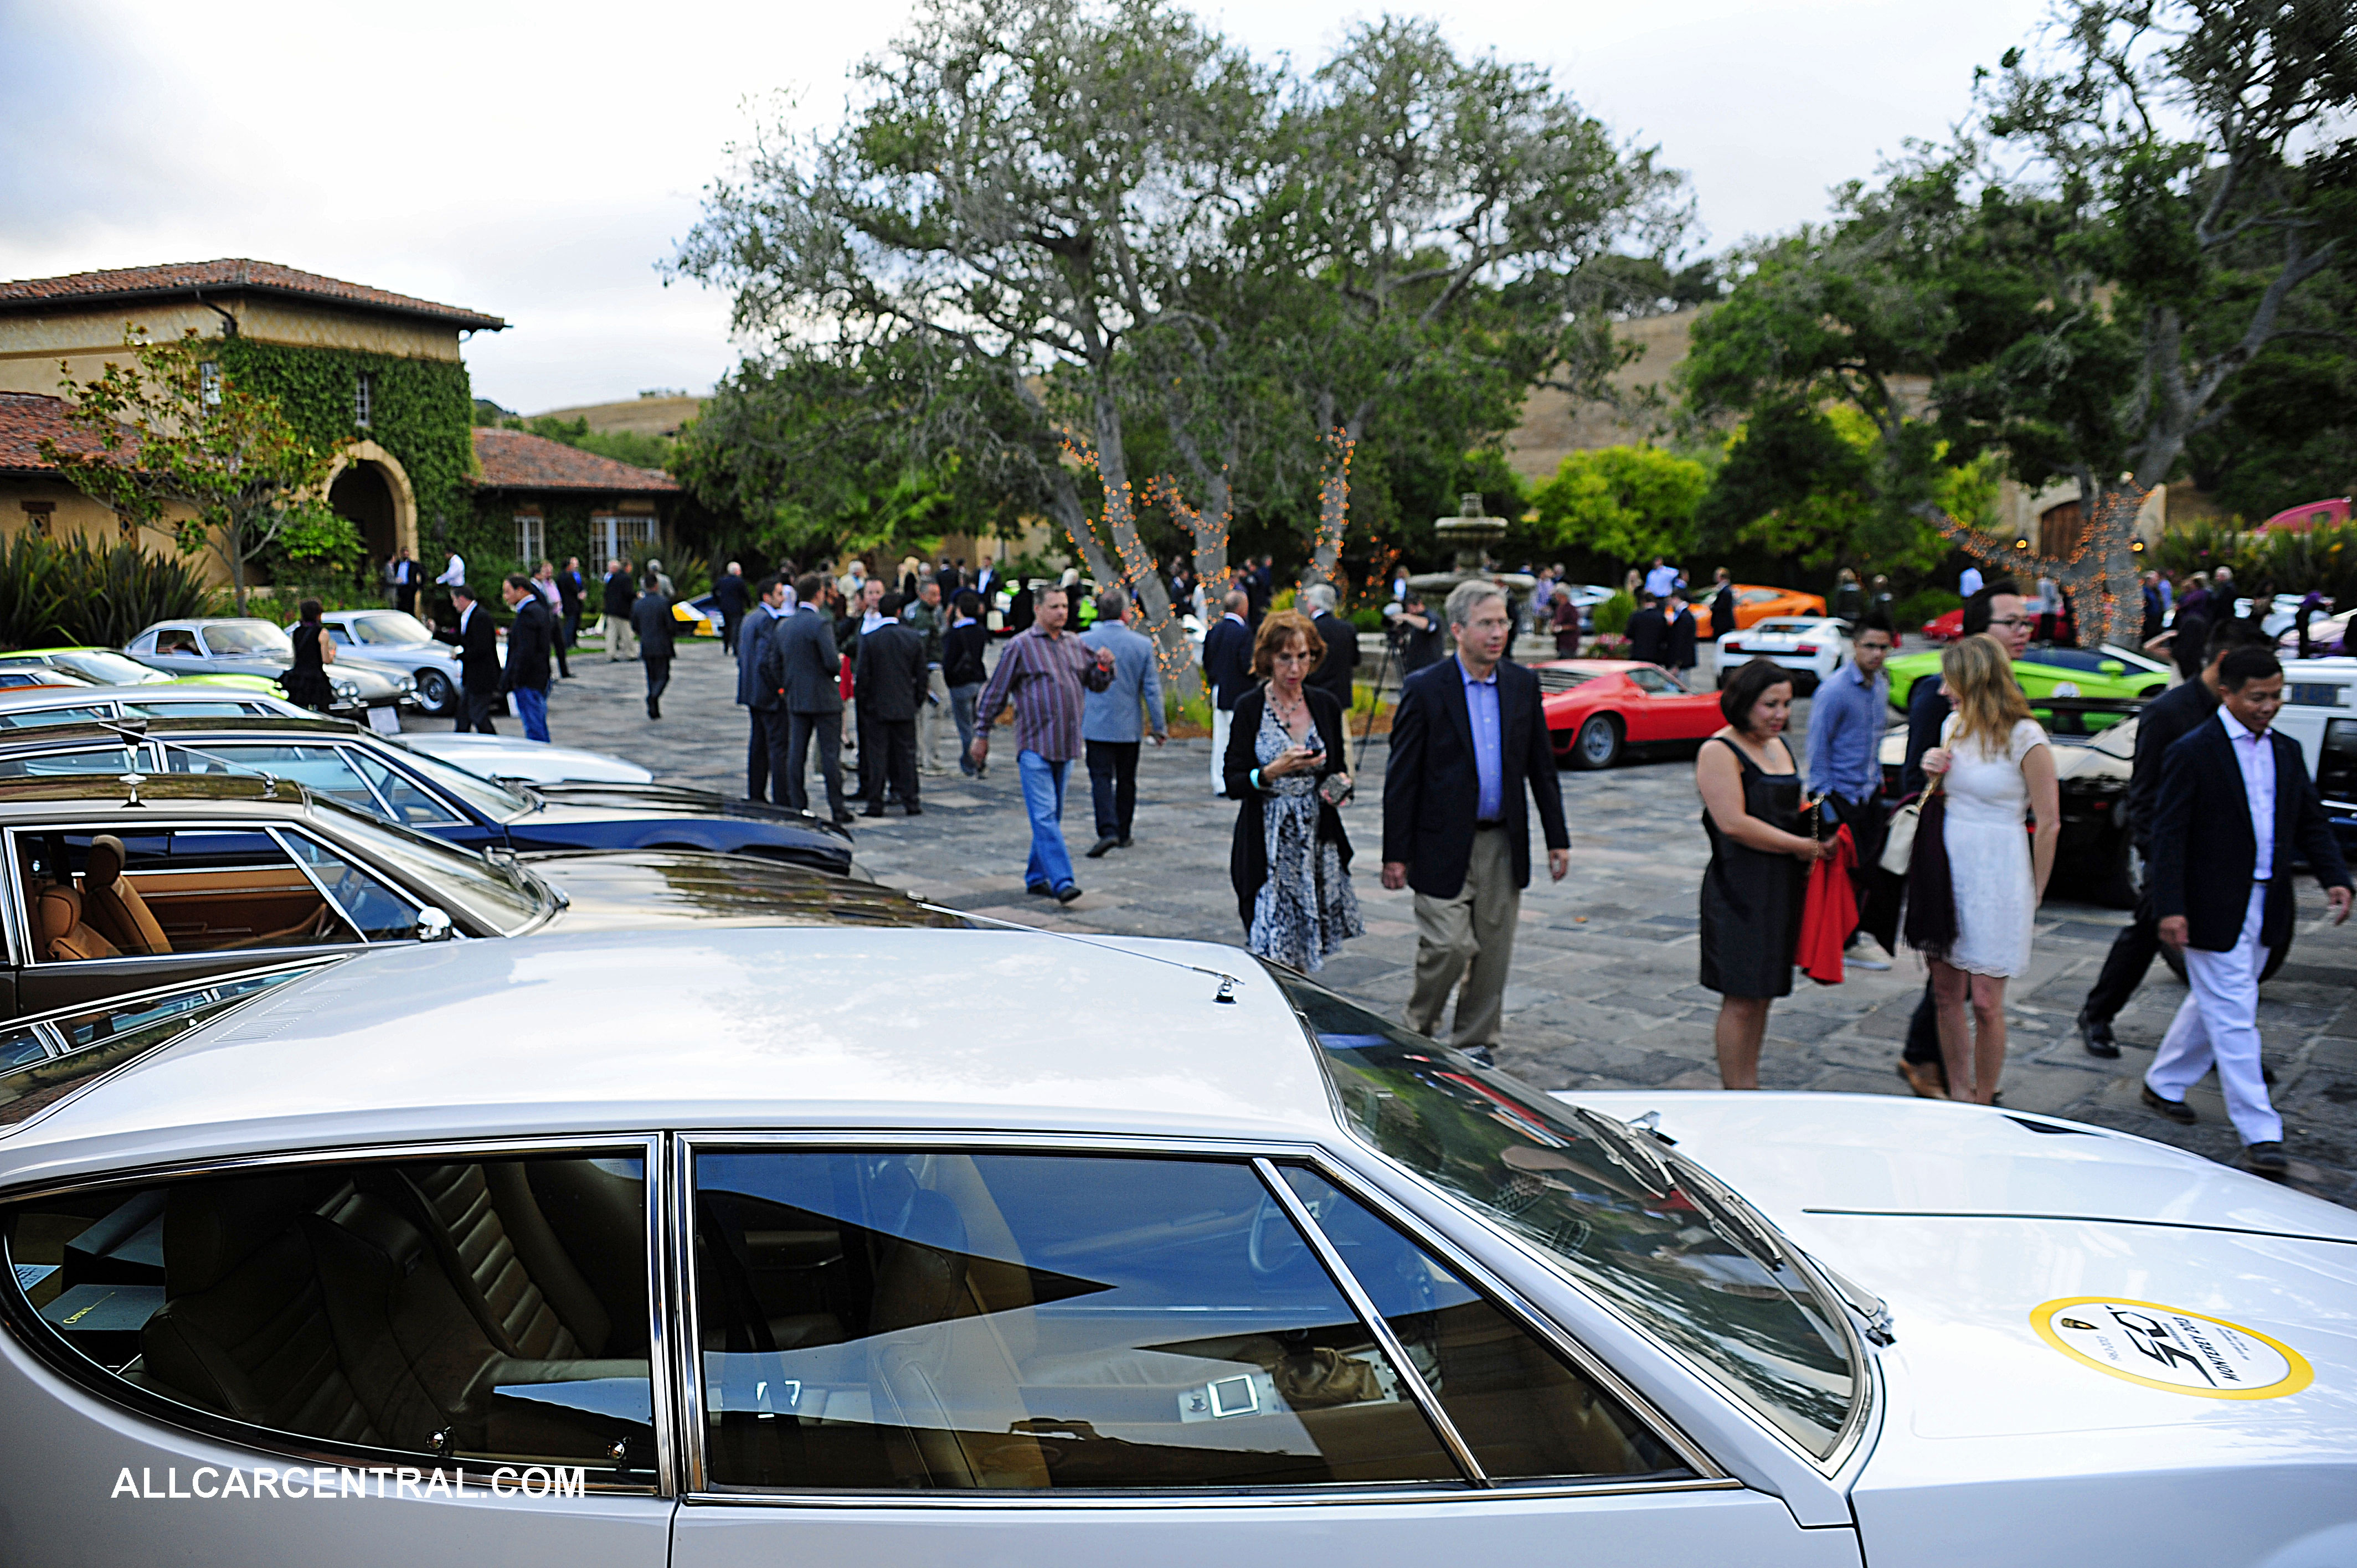 The Lamborghini Club gathering, Serata Italiana